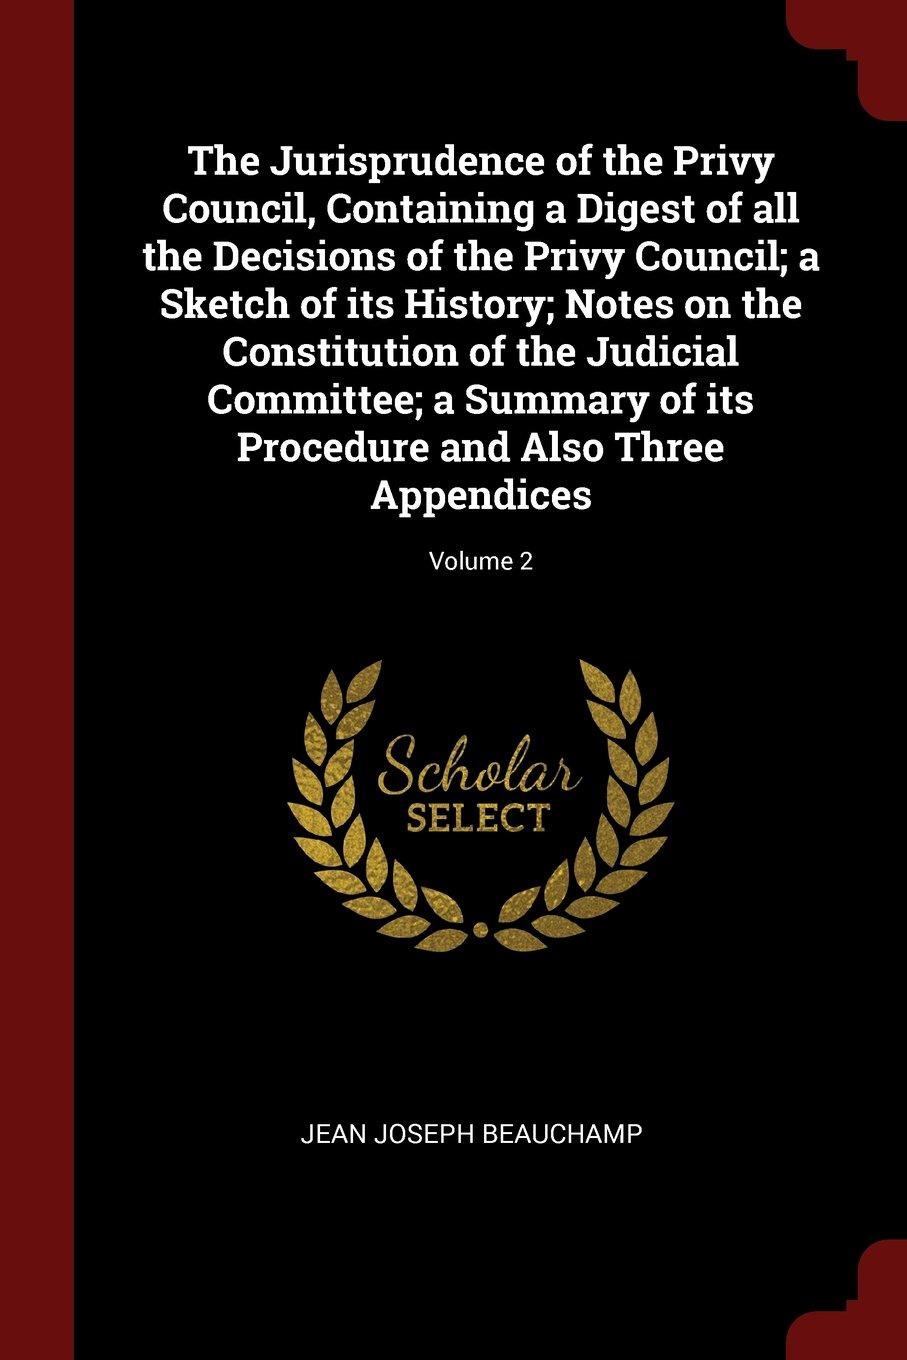 Download The Jurisprudence of the Privy Council, Containing a Digest of all the Decisions of the Privy Council; a Sketch of its History; Notes on the ... Procedure and Also Three Appendices; Volume 2 PDF